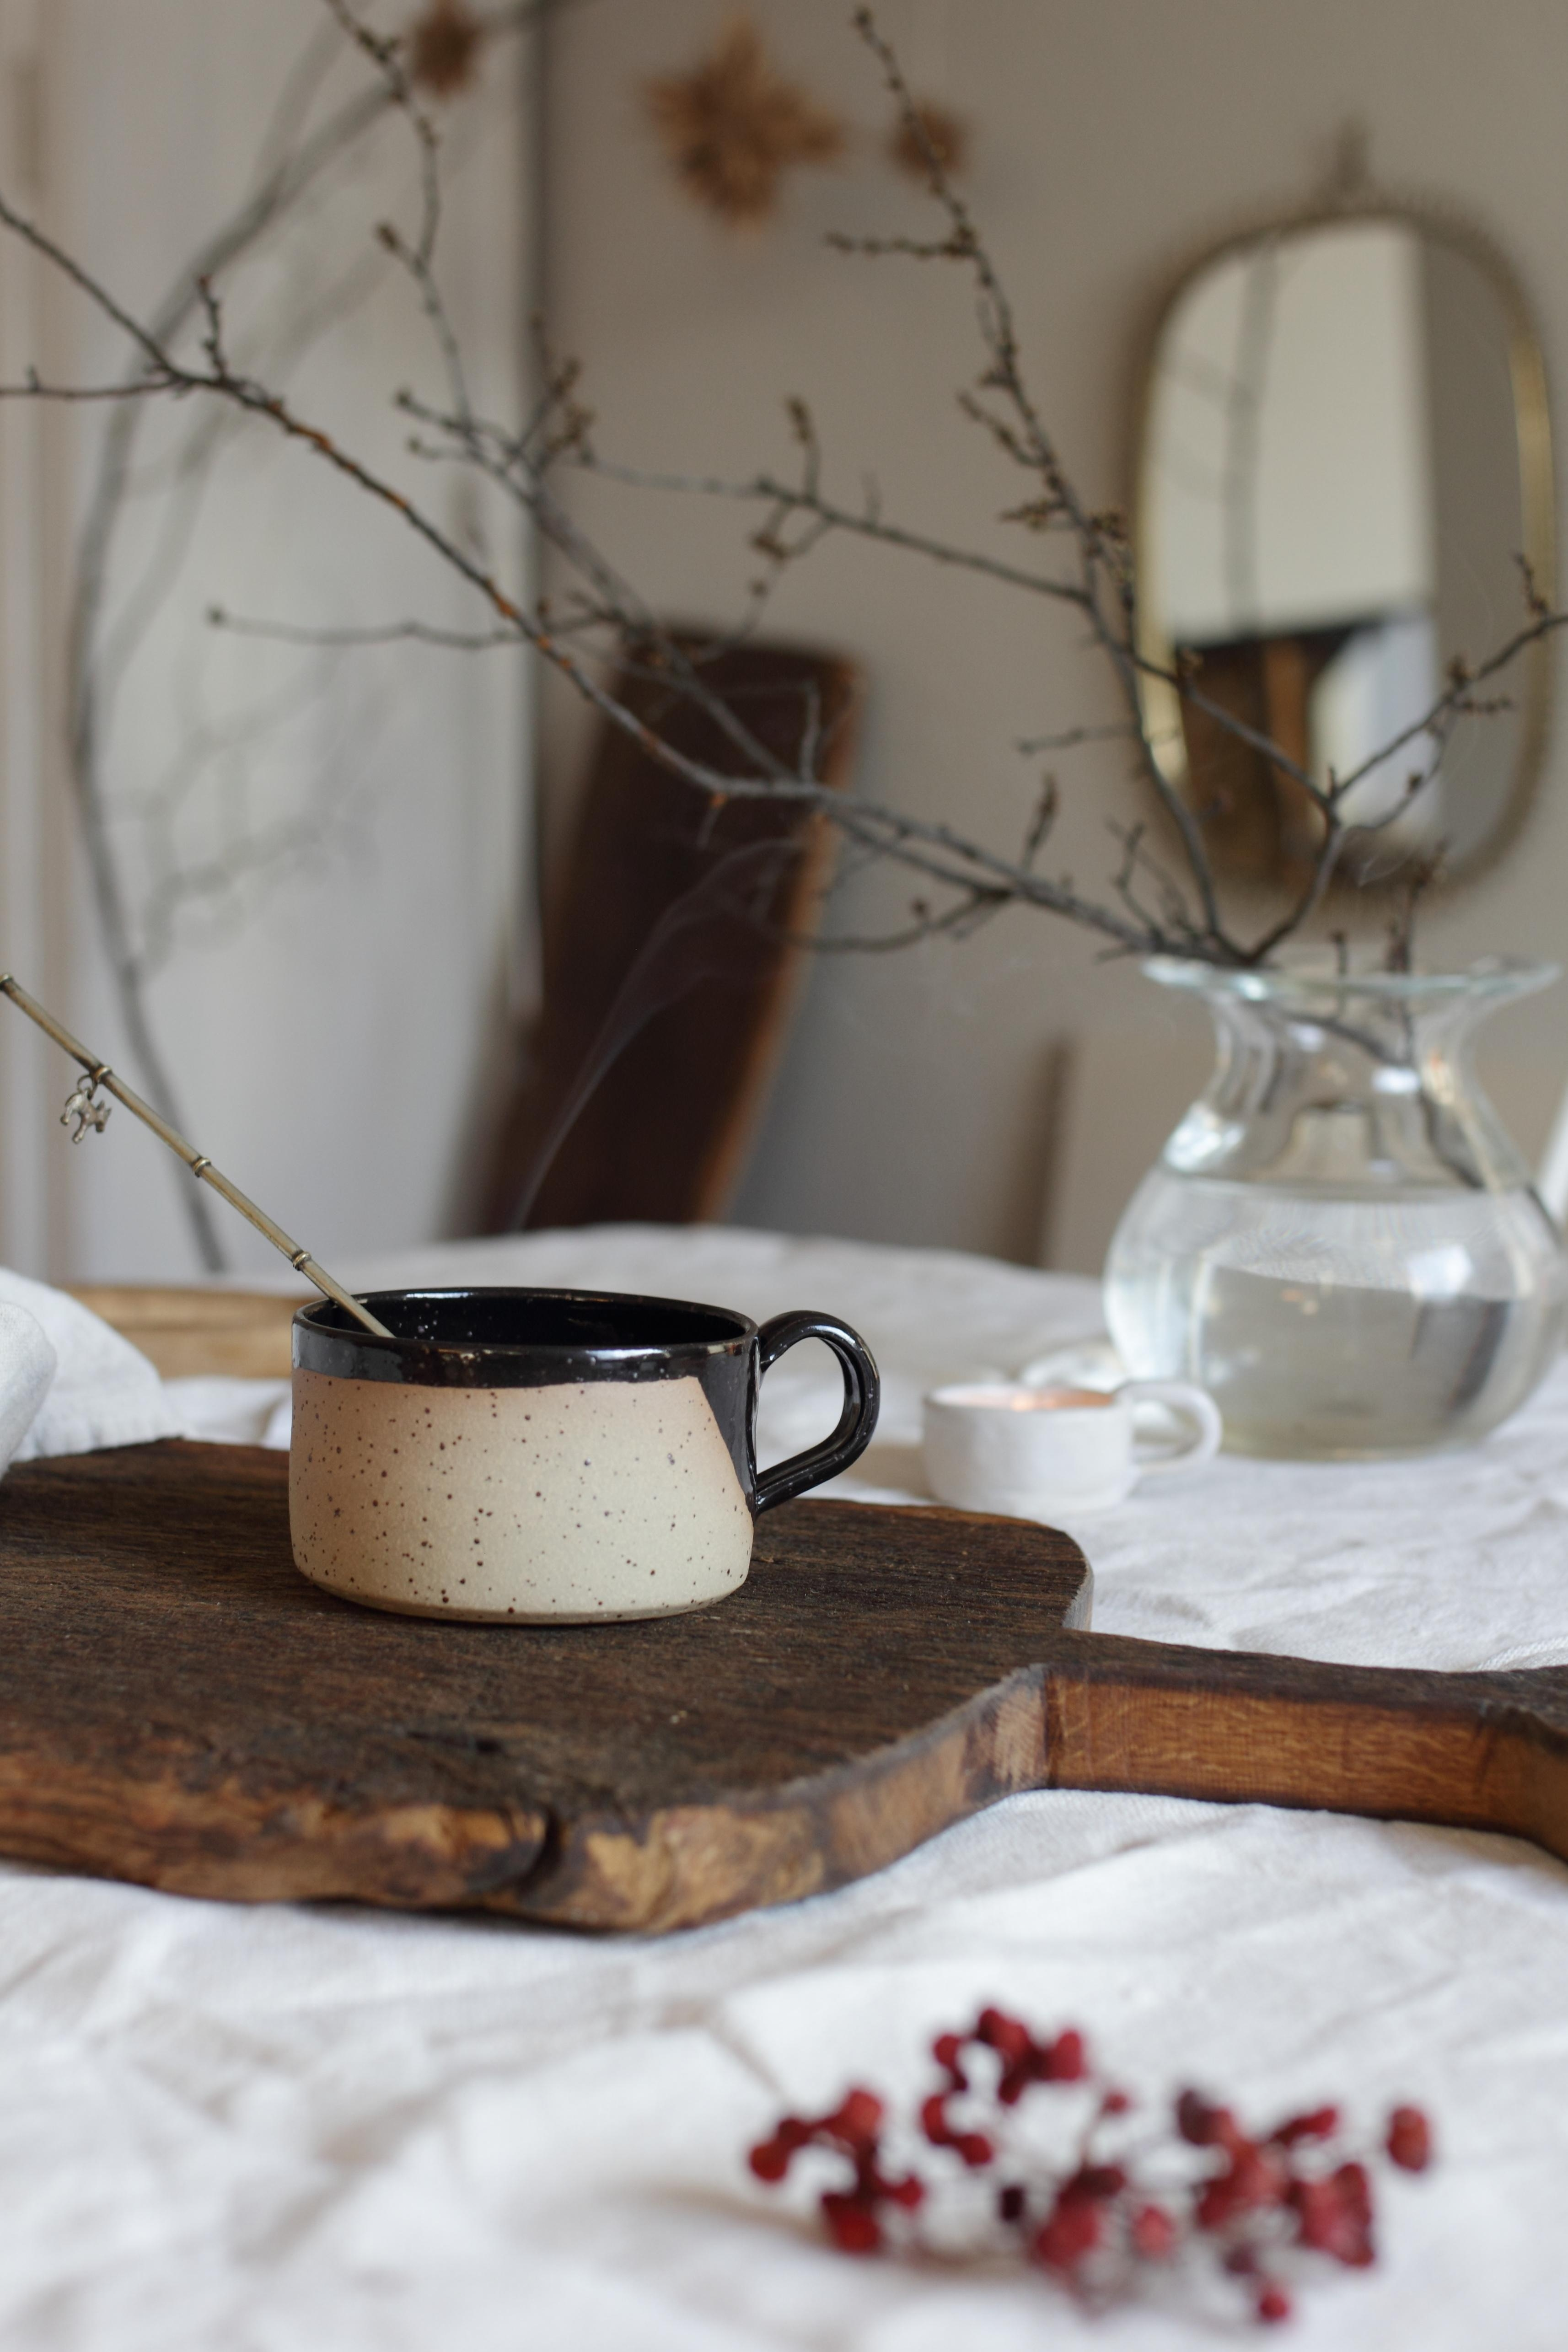 #coffeelover #foodchallenge #mindlyceramics #slowliving